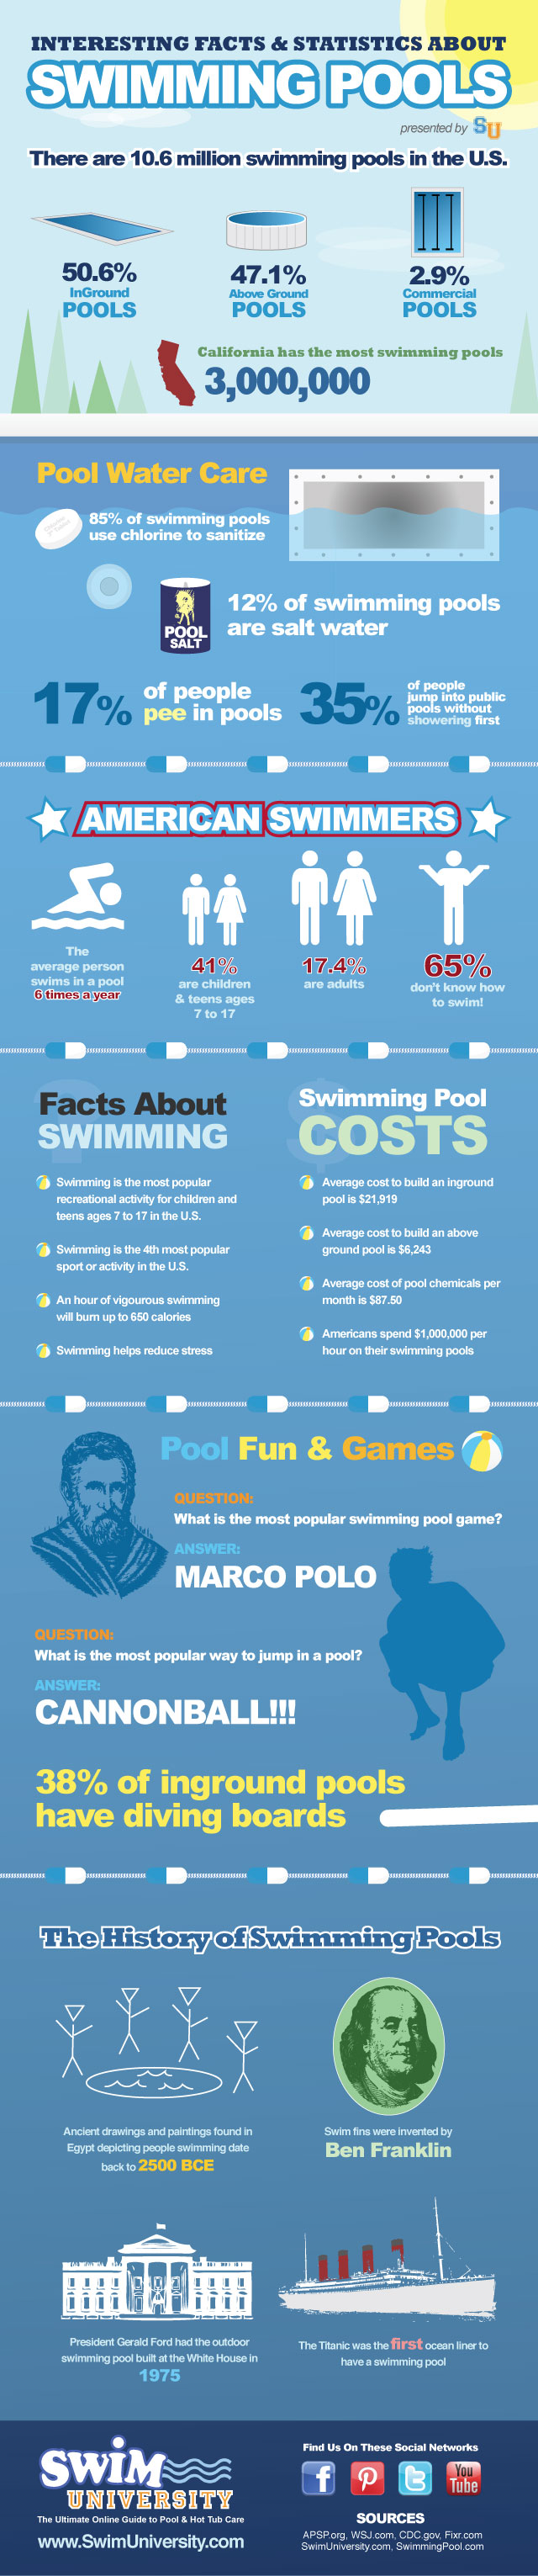 Interesting Facts About Swimming Pools